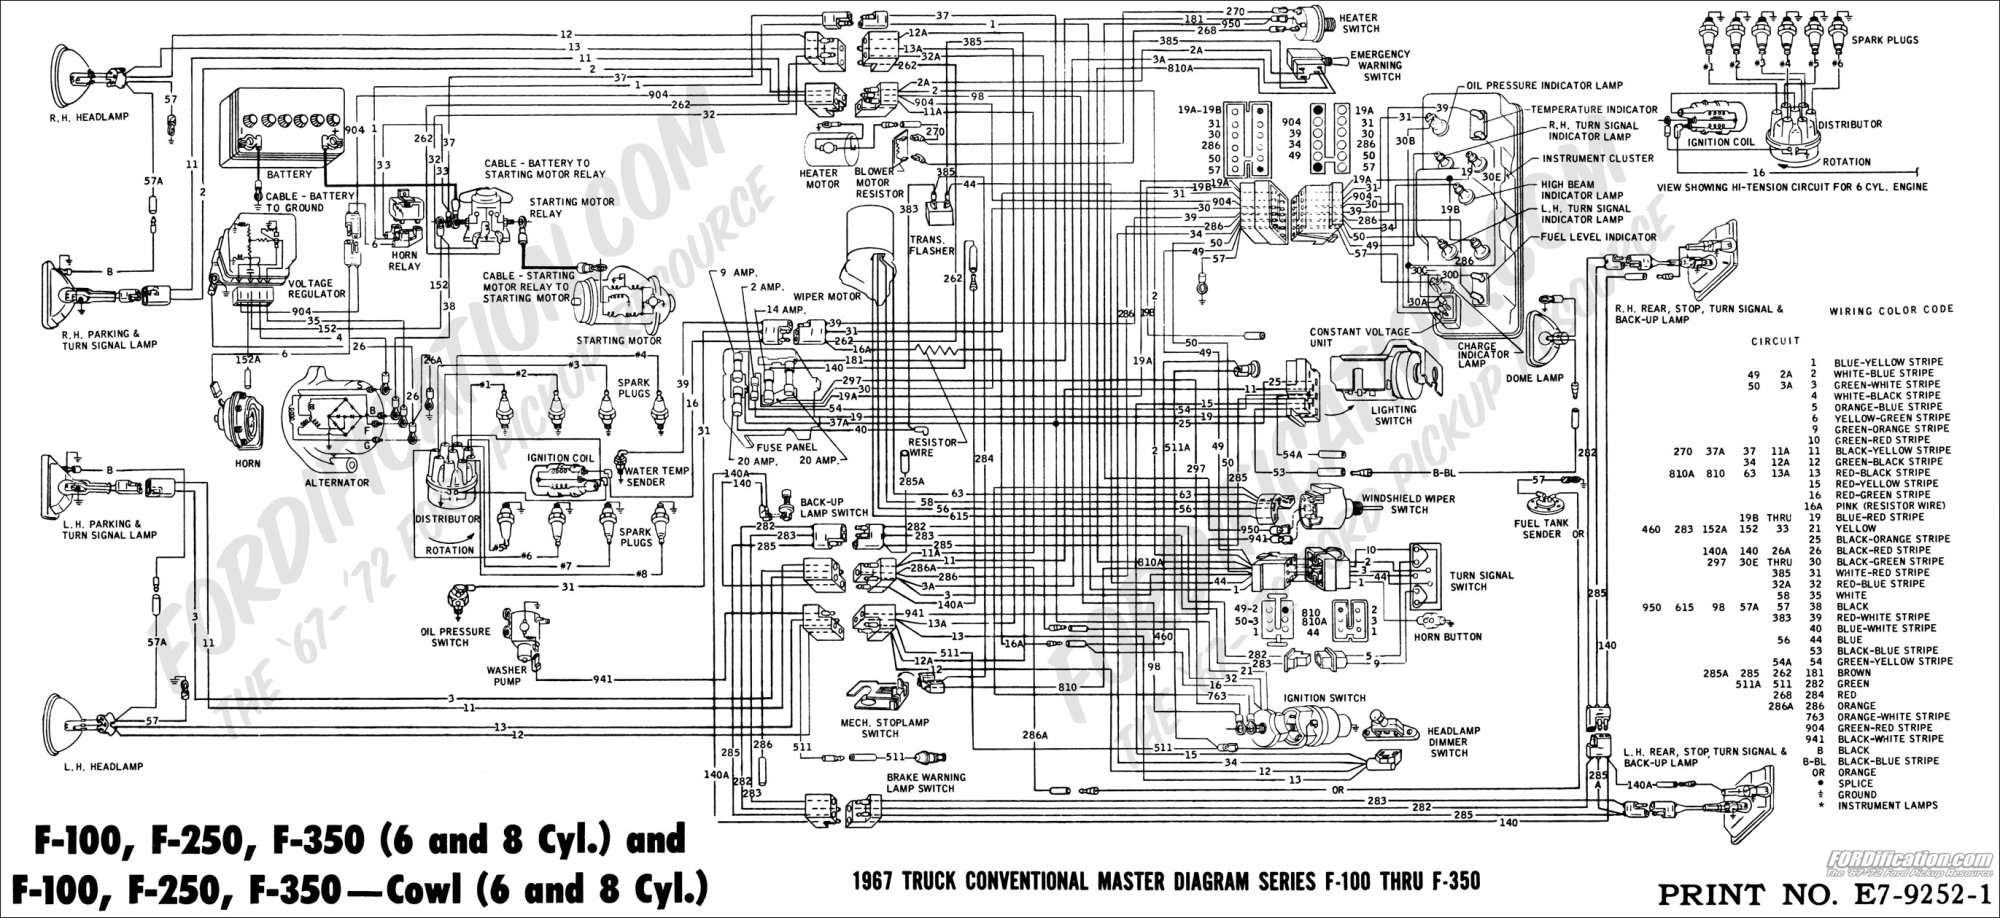 hight resolution of ford truck fuse diagram online manuual of wiring diagram 2002 ford truck fuse panel diagram ford truck fuse diagram